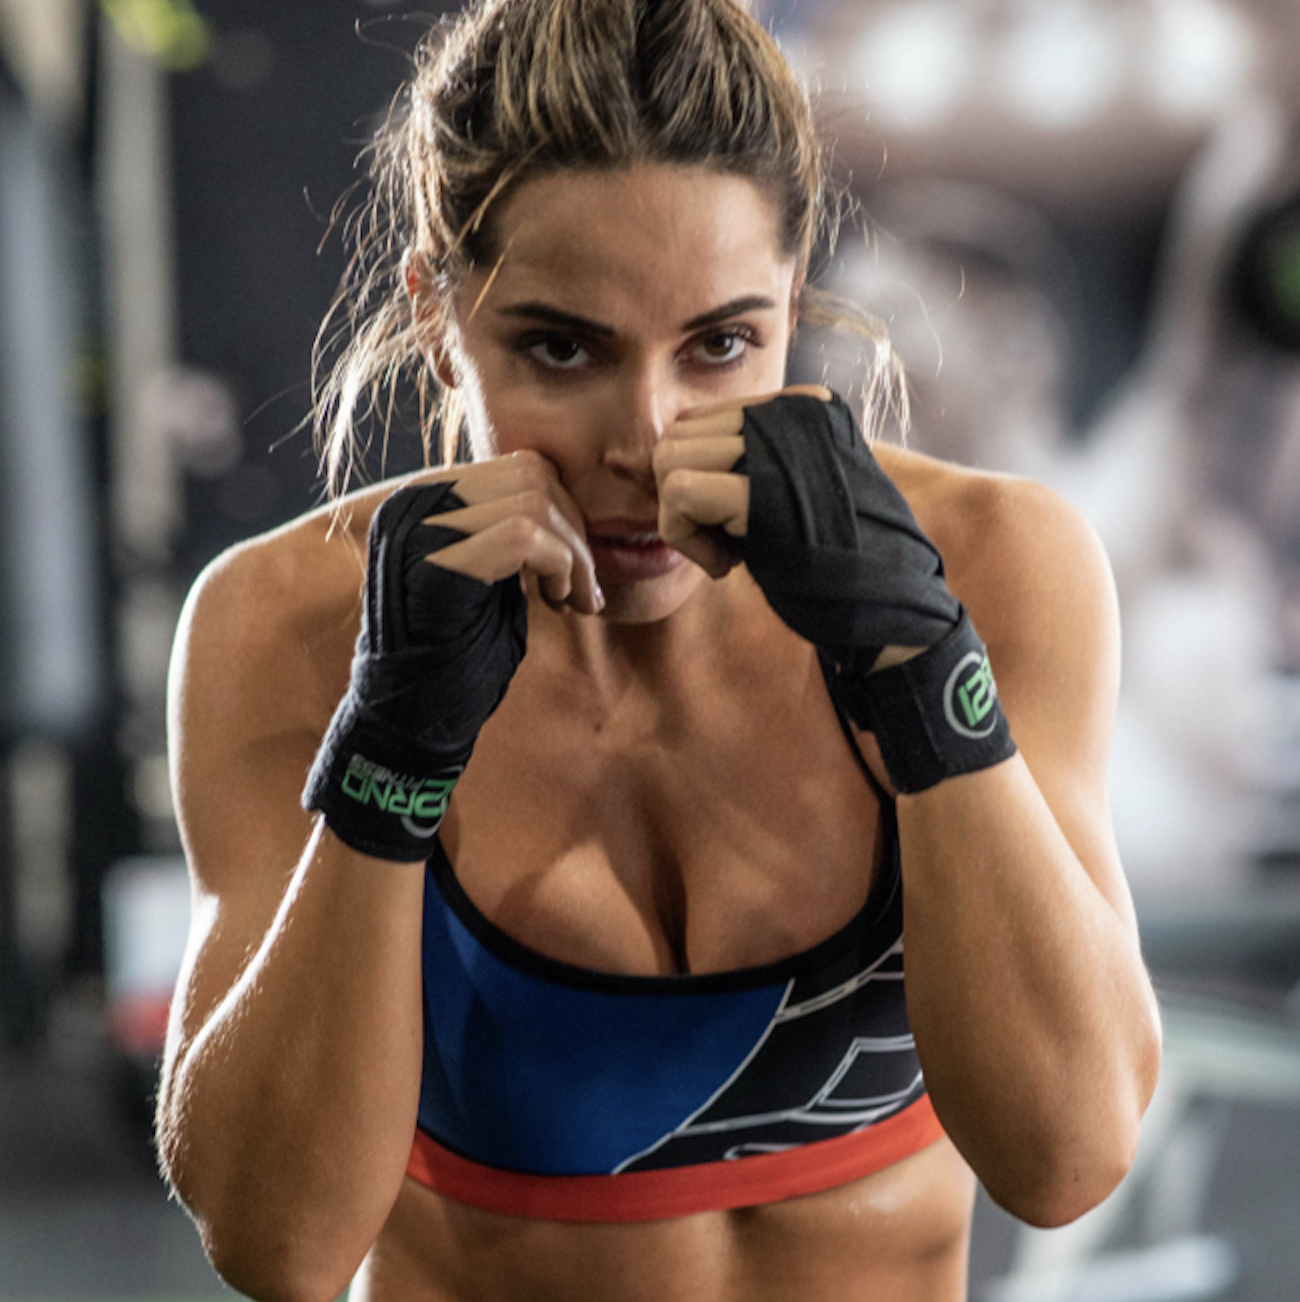 Ellice-boxing-bondijunction-fitness-training-gym.png